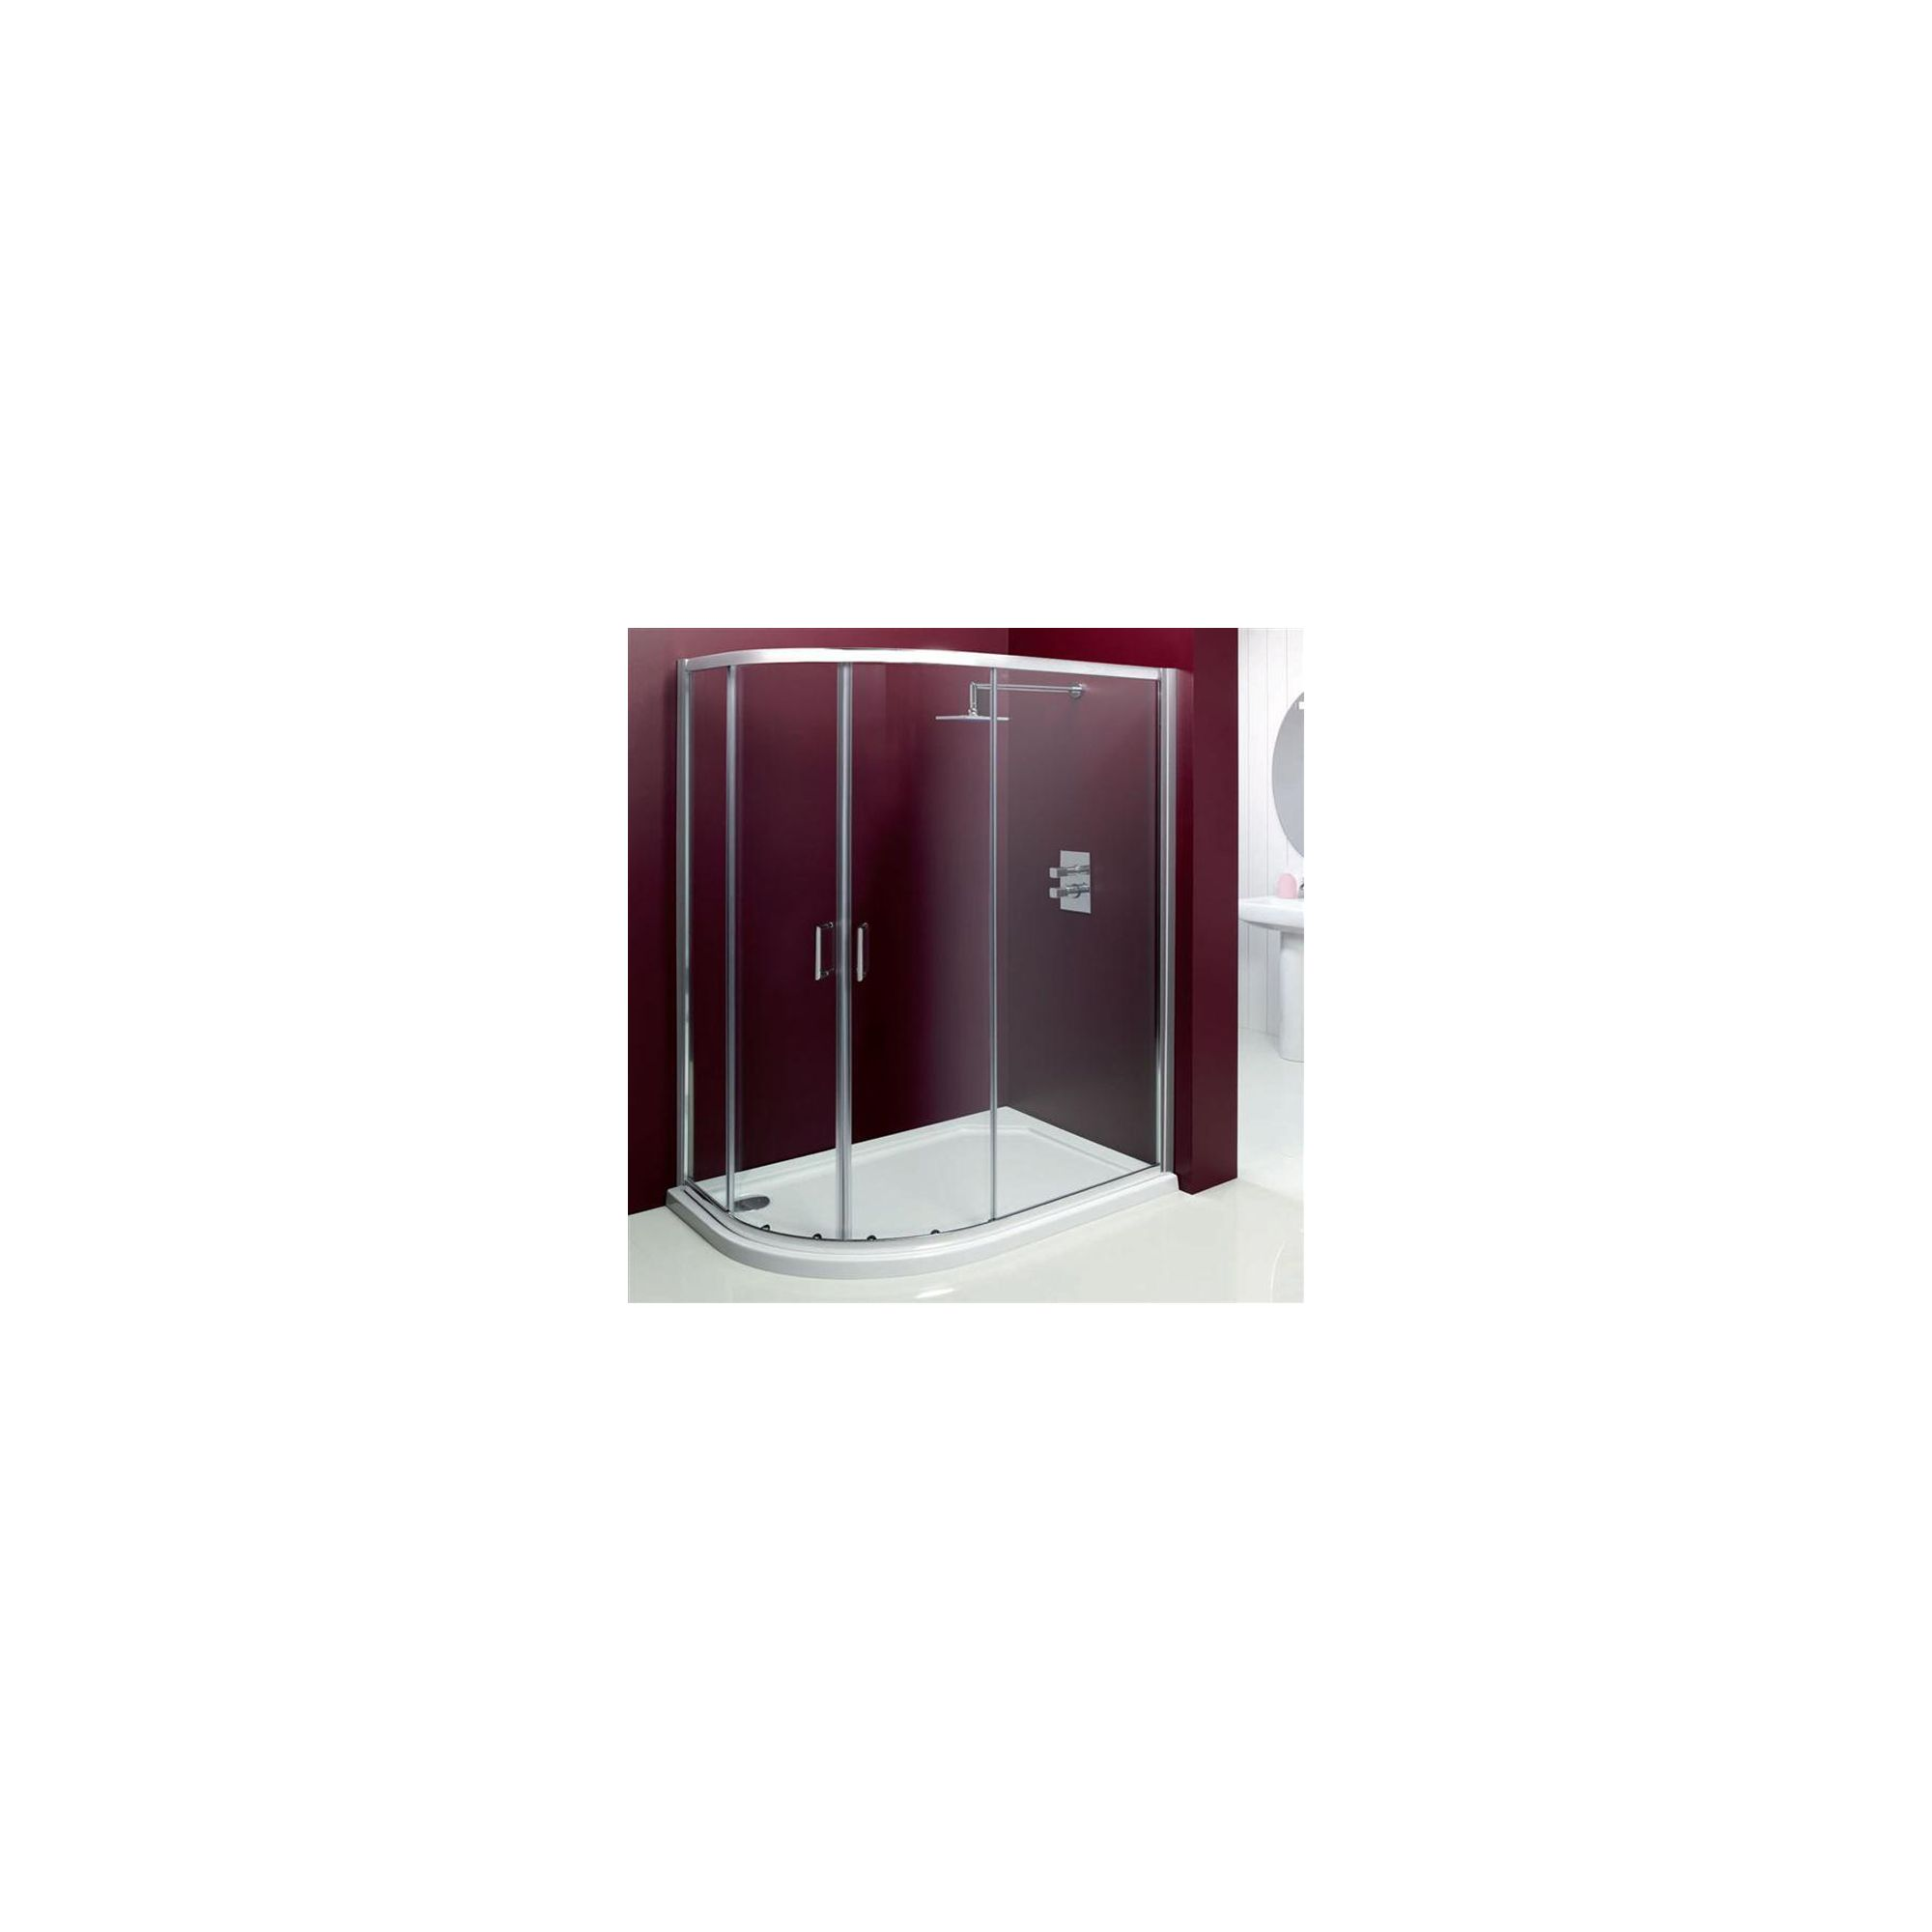 Merlyn Vivid Entree Offset Quadrant Shower Door, 900mm x 760mm, 6mm Glass at Tesco Direct